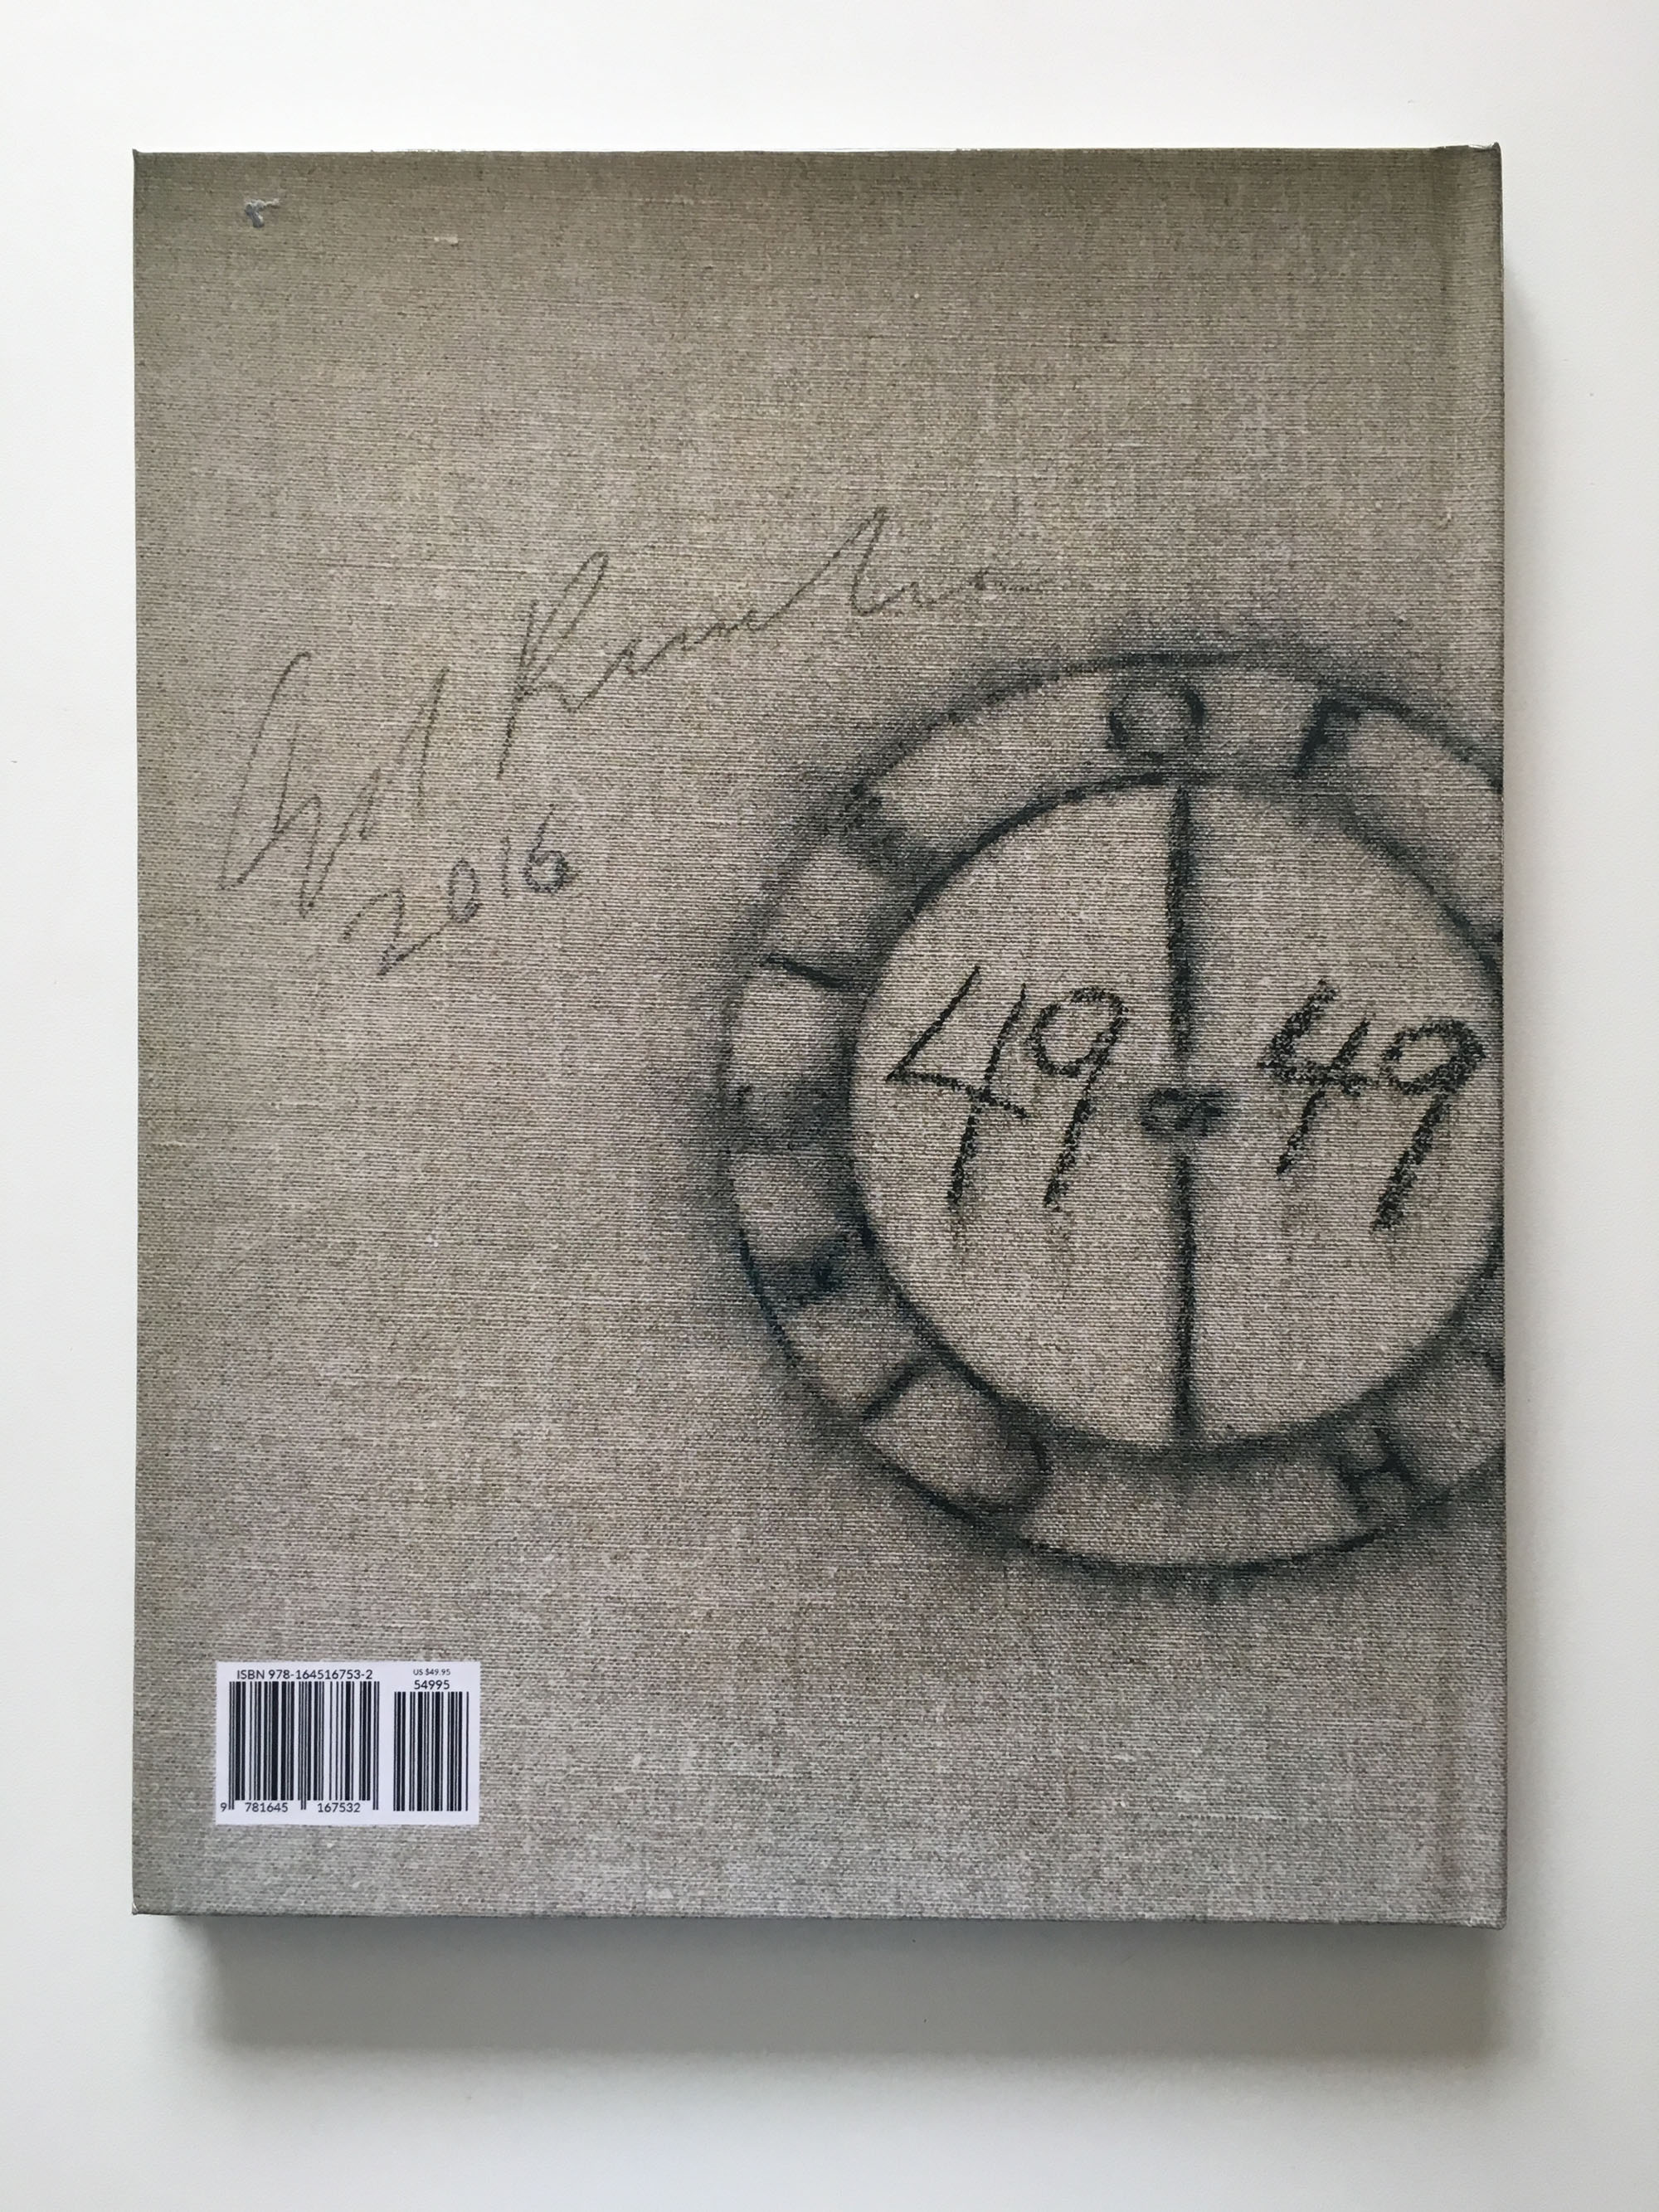 Back cover of the Circle of Truth exhibition catalog, featuring a verso detail photo of Ed Ruscha's painting #49